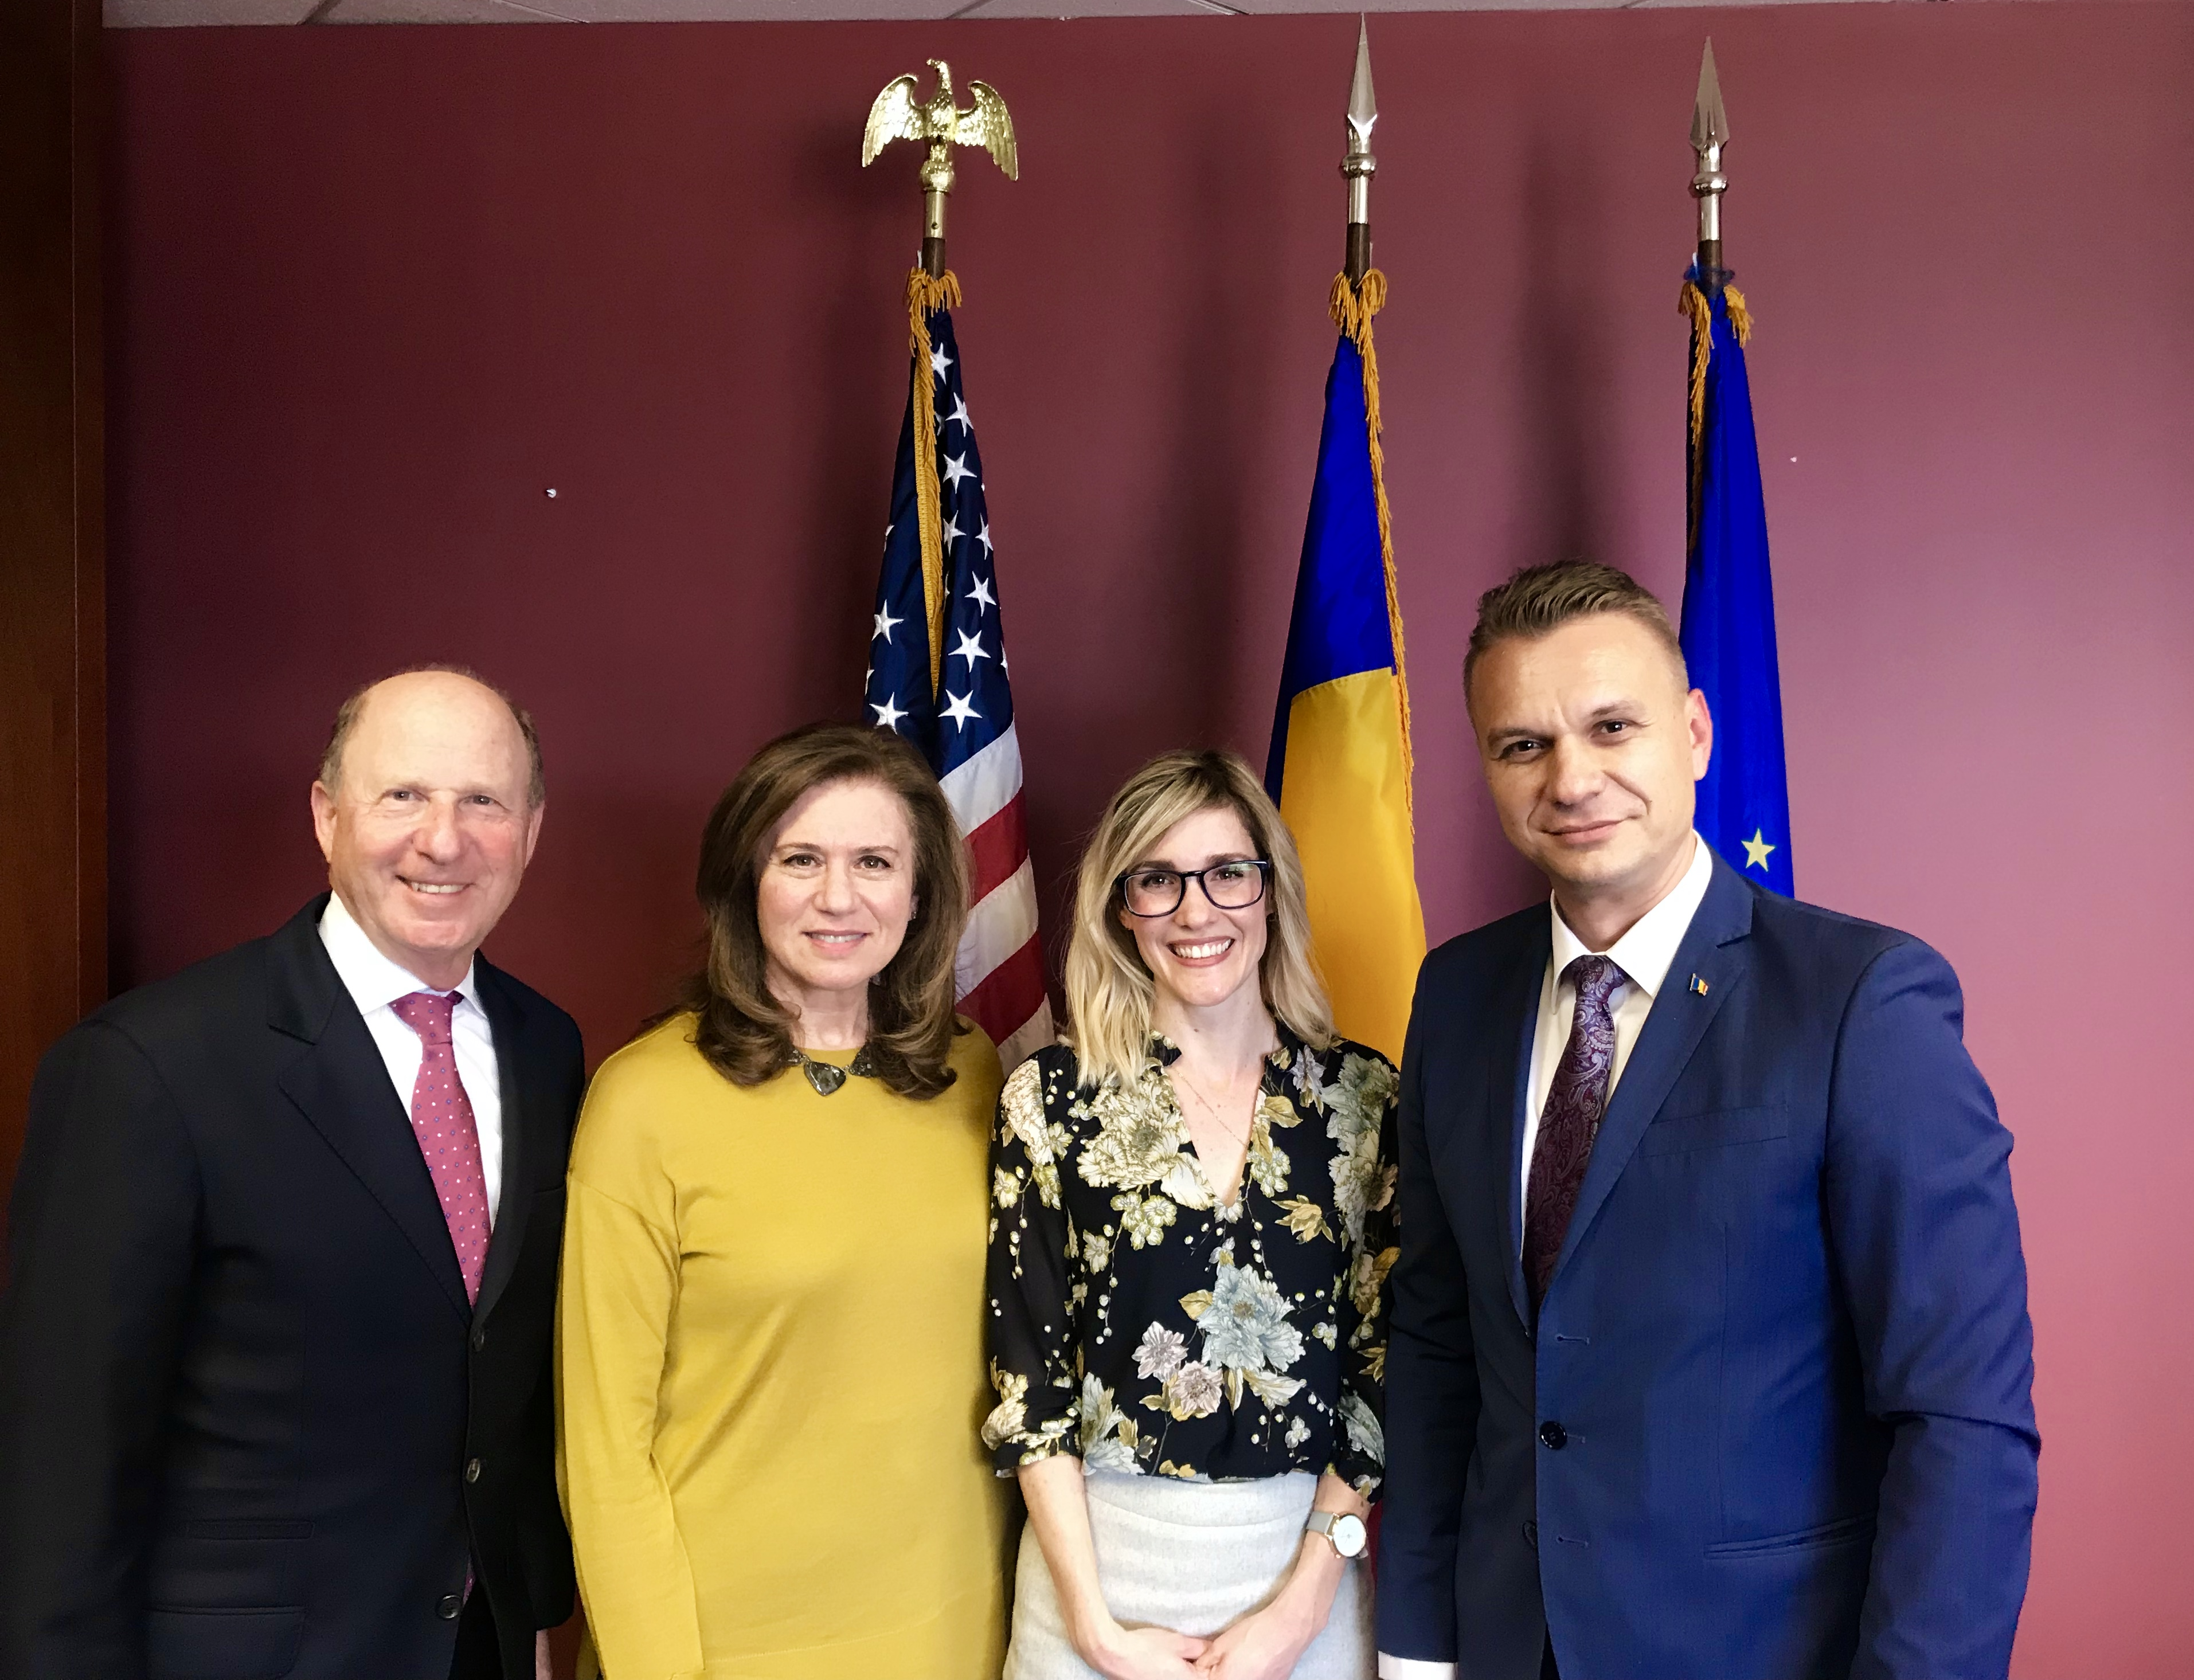 2019-03-26 Meeting with Consul General of Romania